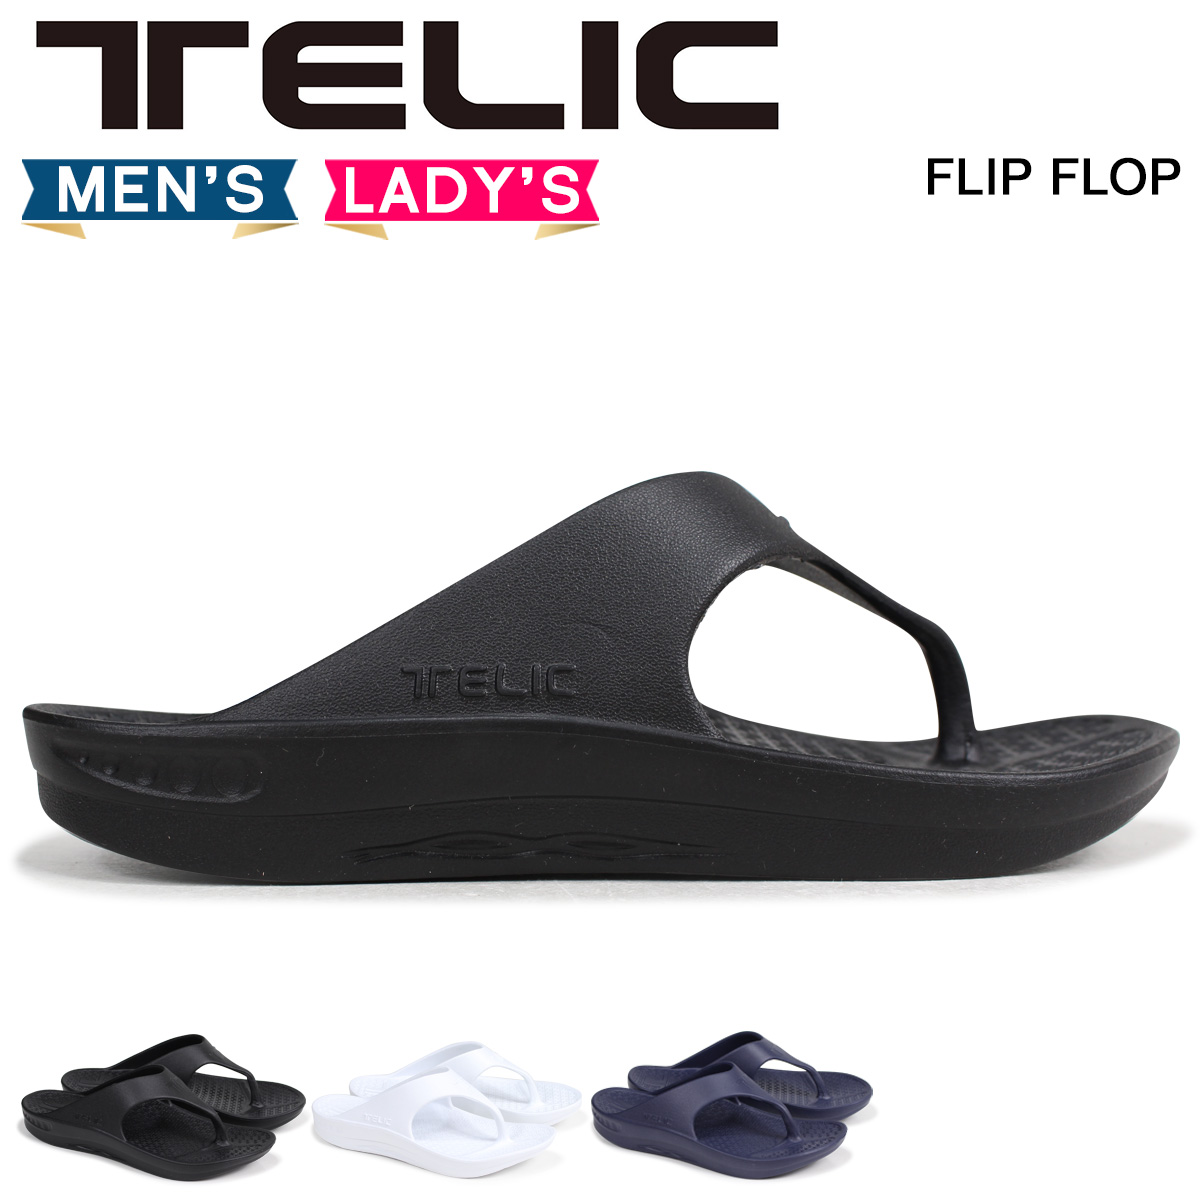 Sugar Online Shop Telic Sandals Comfort Men Gap Flip Flop Dis Black White Navy Load Planned Shinnyu In Reservation Product 6 1 Containing